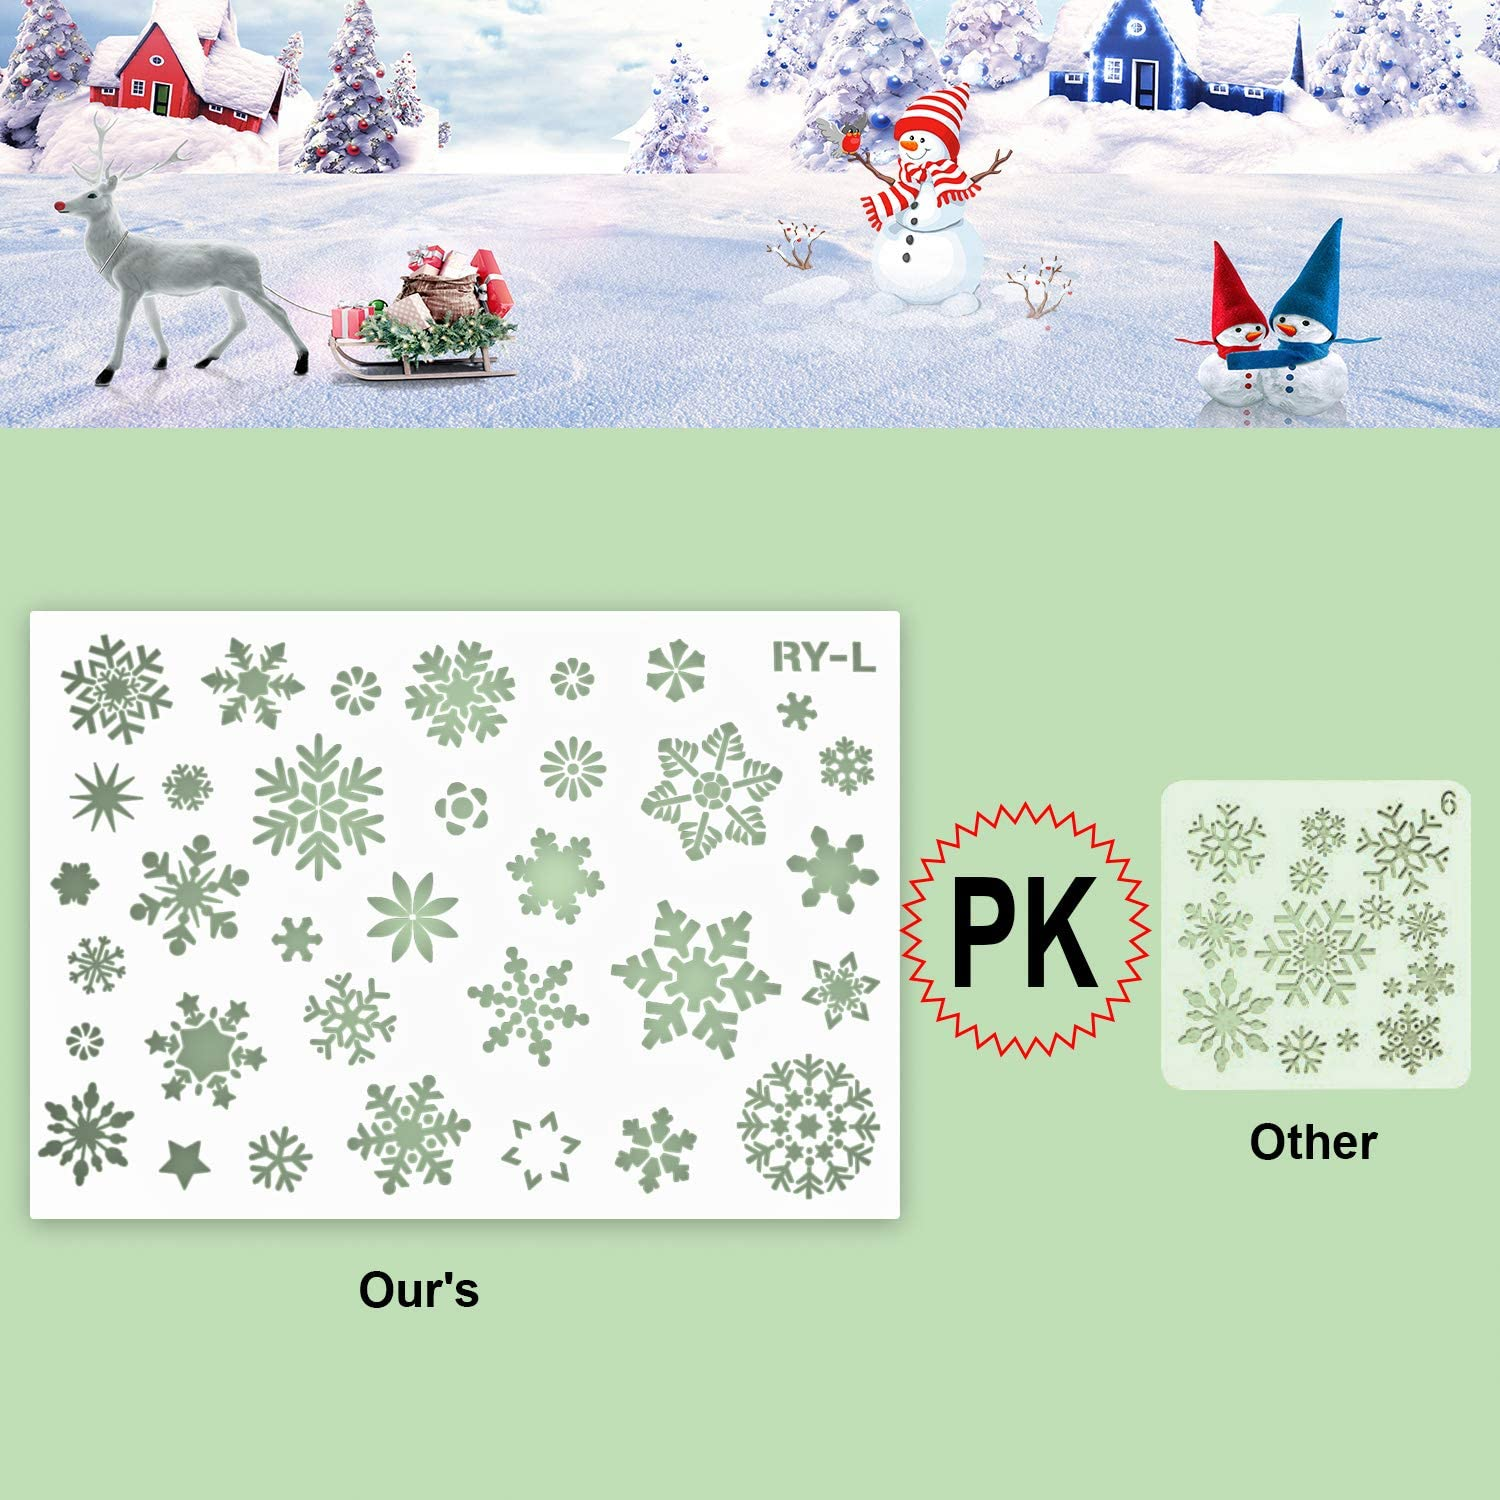 7Pcs Large Plastic Snowflake Stencils for Painting Wood HOWAF Christmas Snowflake Stencils Templates Reusable Winter Holiday Crafts Stencils for Glass Window Wall Door DIY Xmas Snowfake Decoration